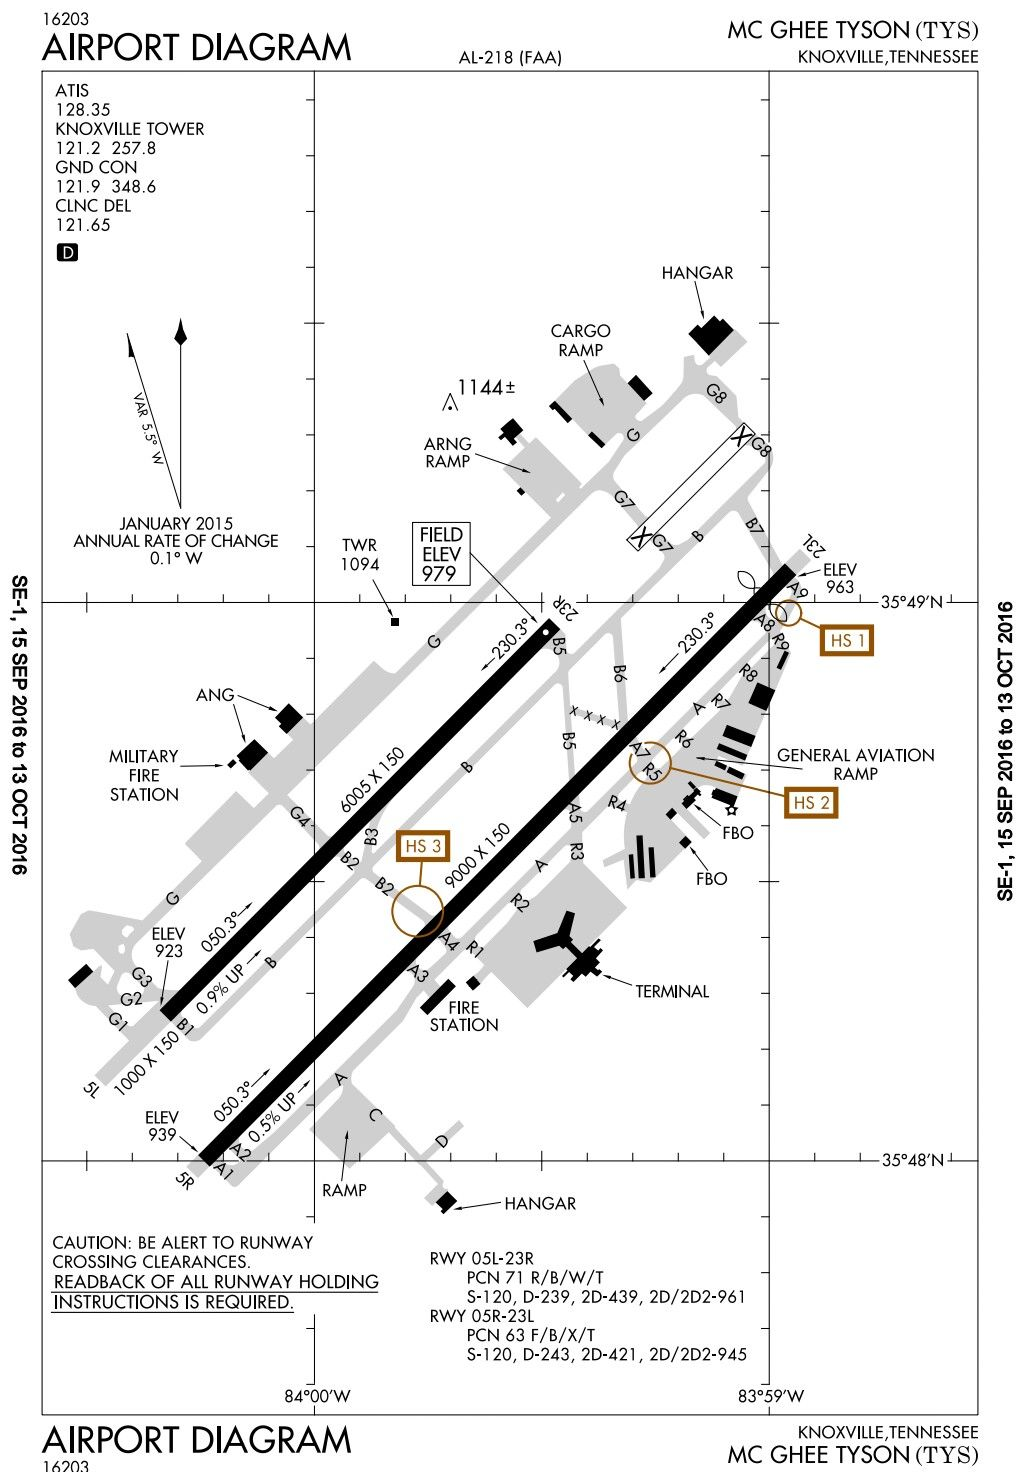 Mcghee Tyson Airport Diagram Knoxville Tennessee Ktys Airport Map Airport General Aviation